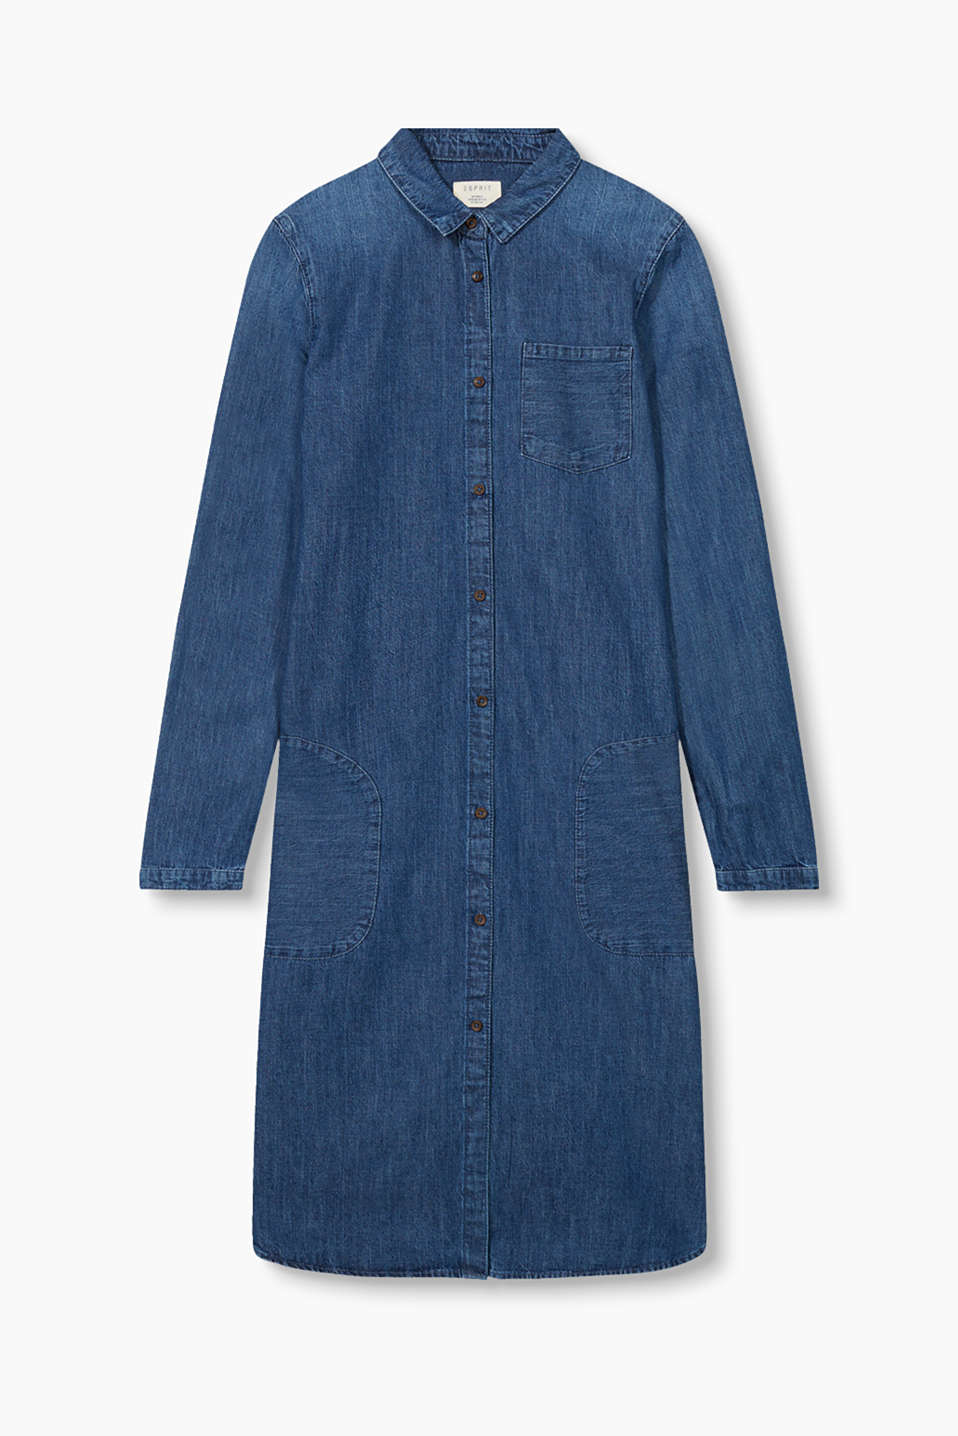 We love denim on denim: slightly flared dress with patch pockets